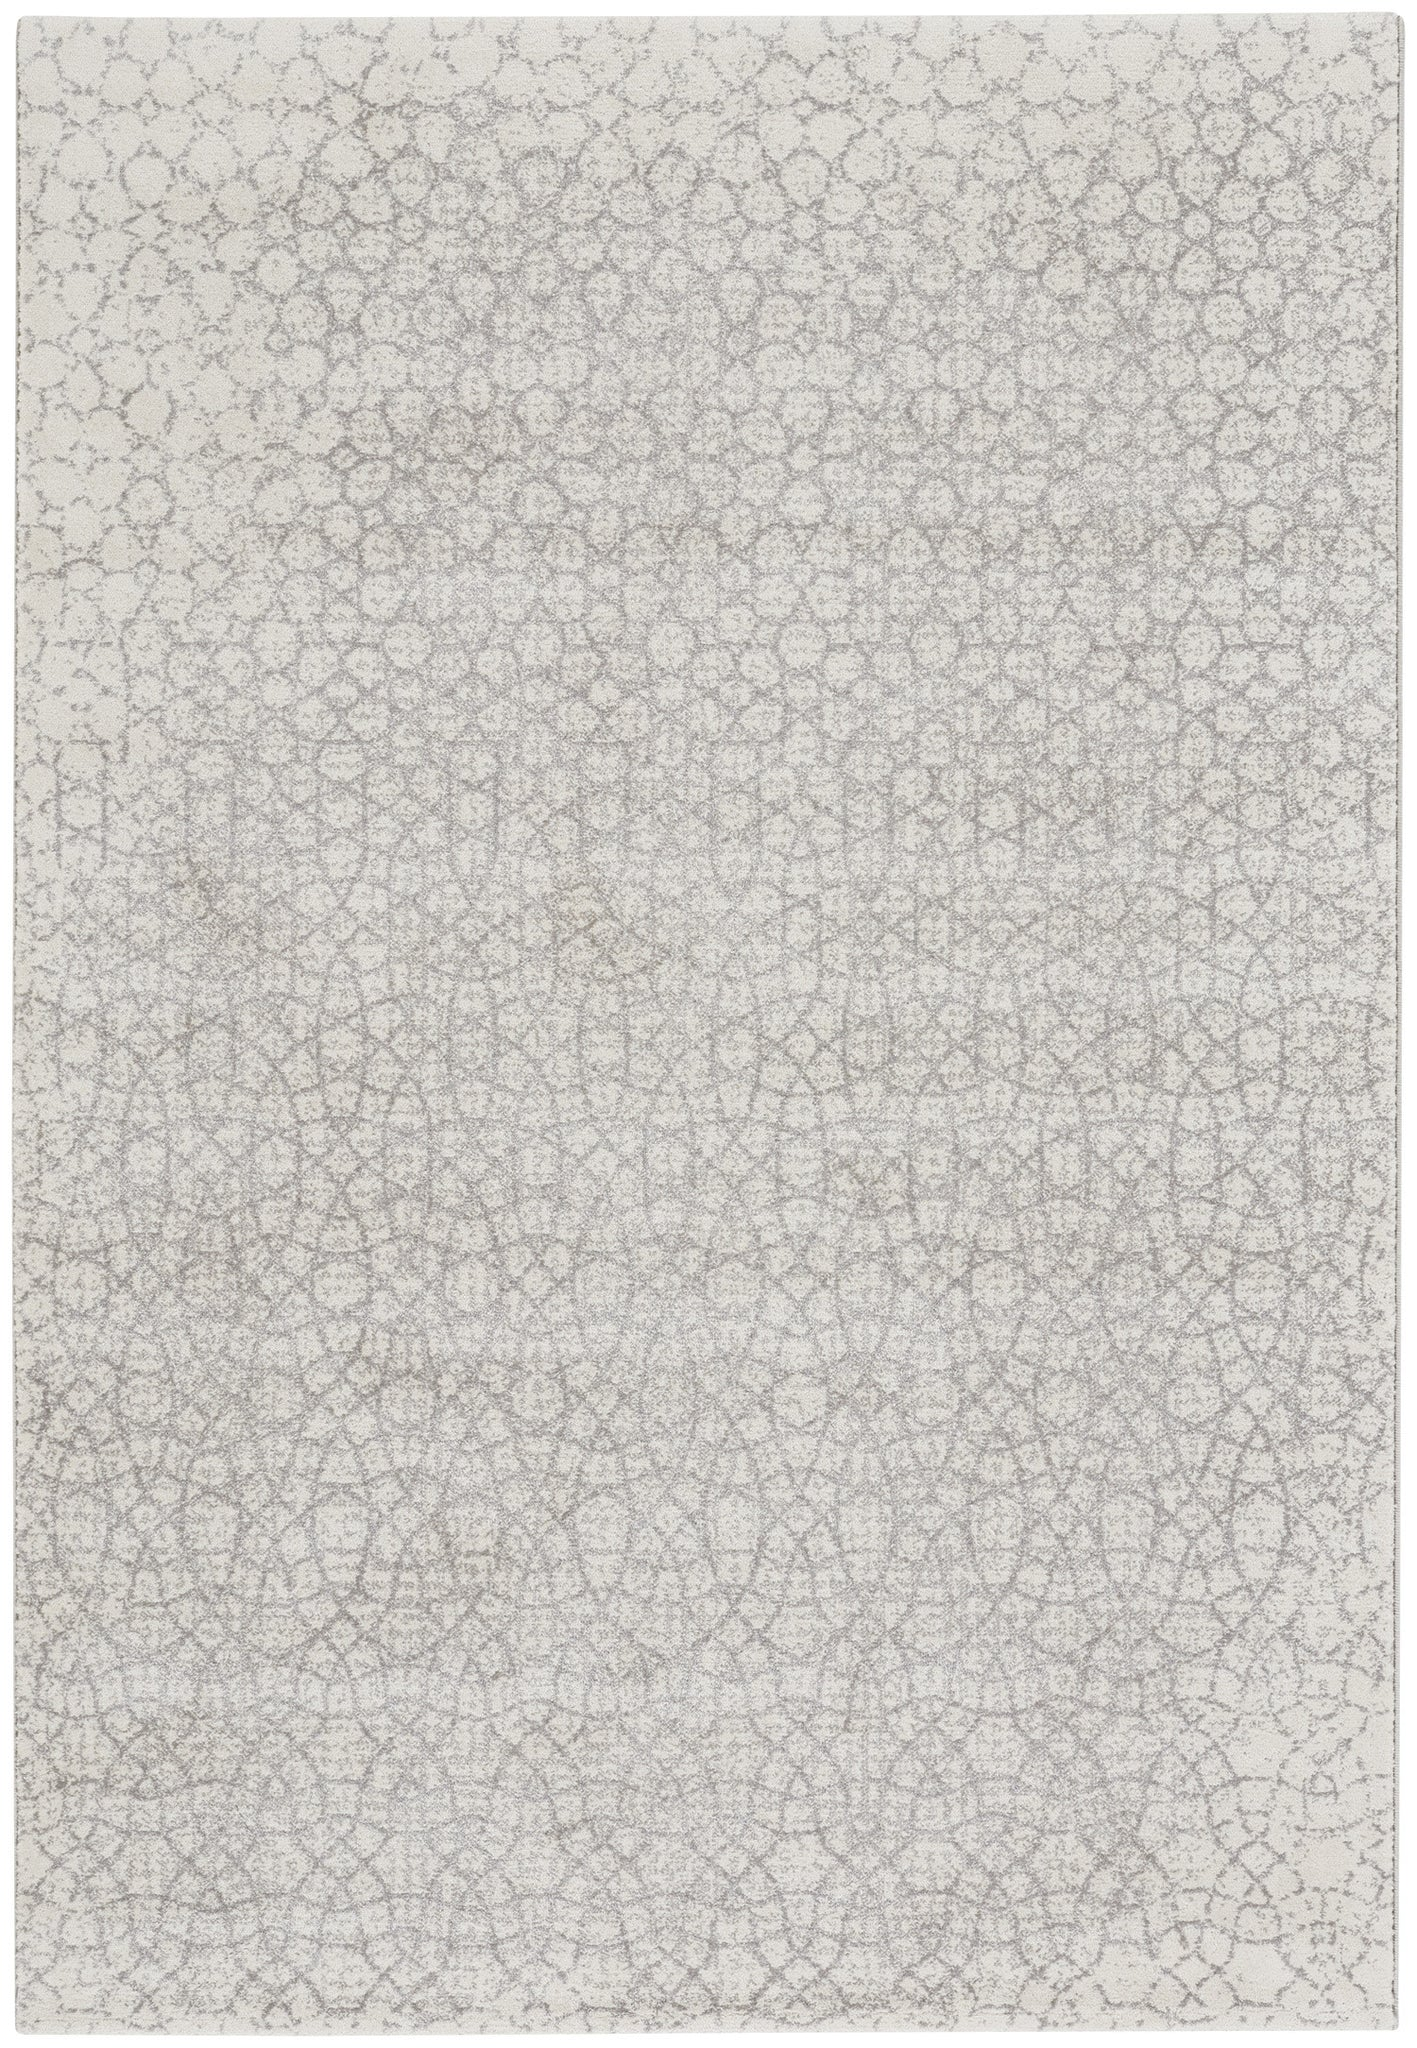 Capel Channel 4742 Silver 350 Area Rug main image